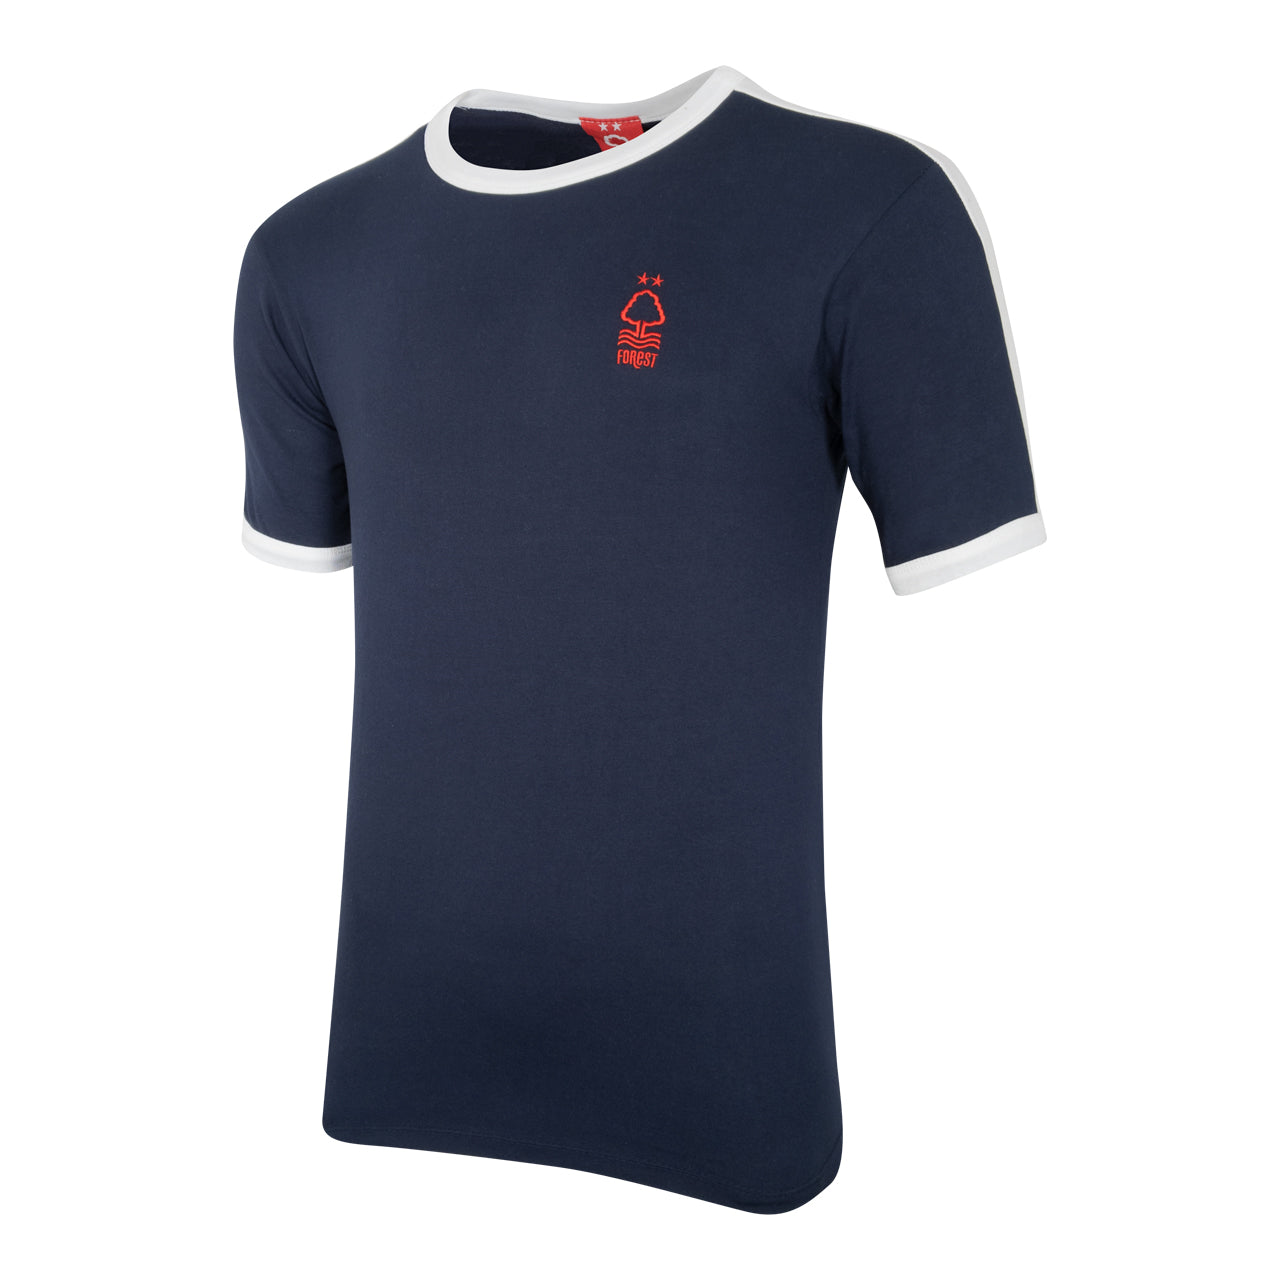 NFFC Mens Navy Essential Ringer T-Shirt